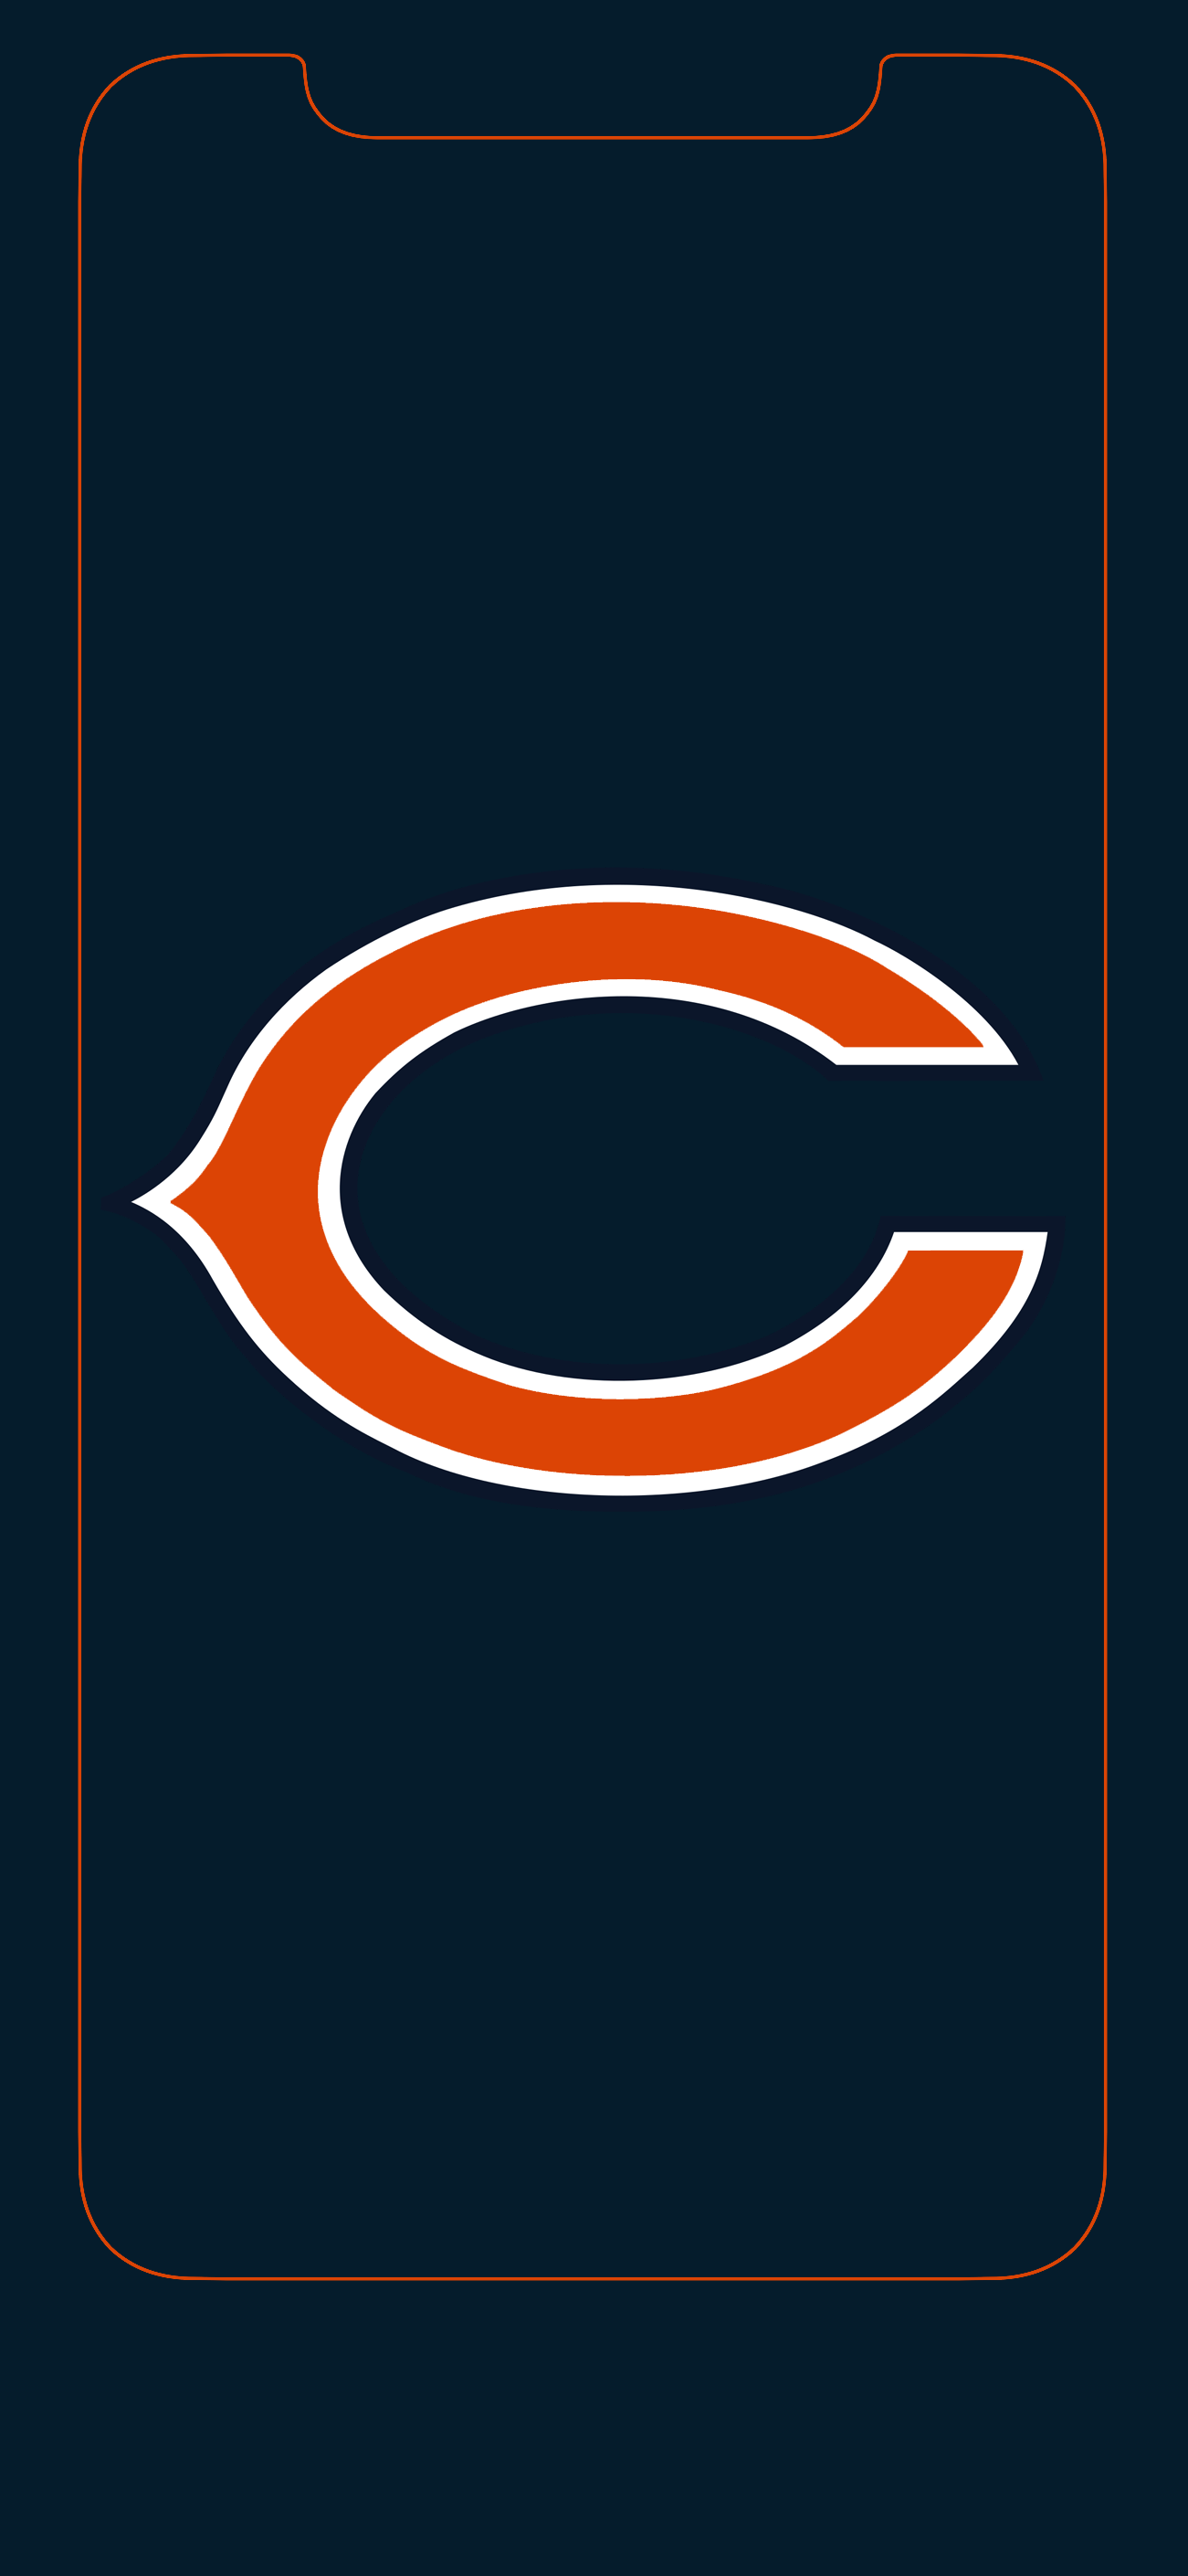 1301x2820 - Chicago Bears Wallpapers 13